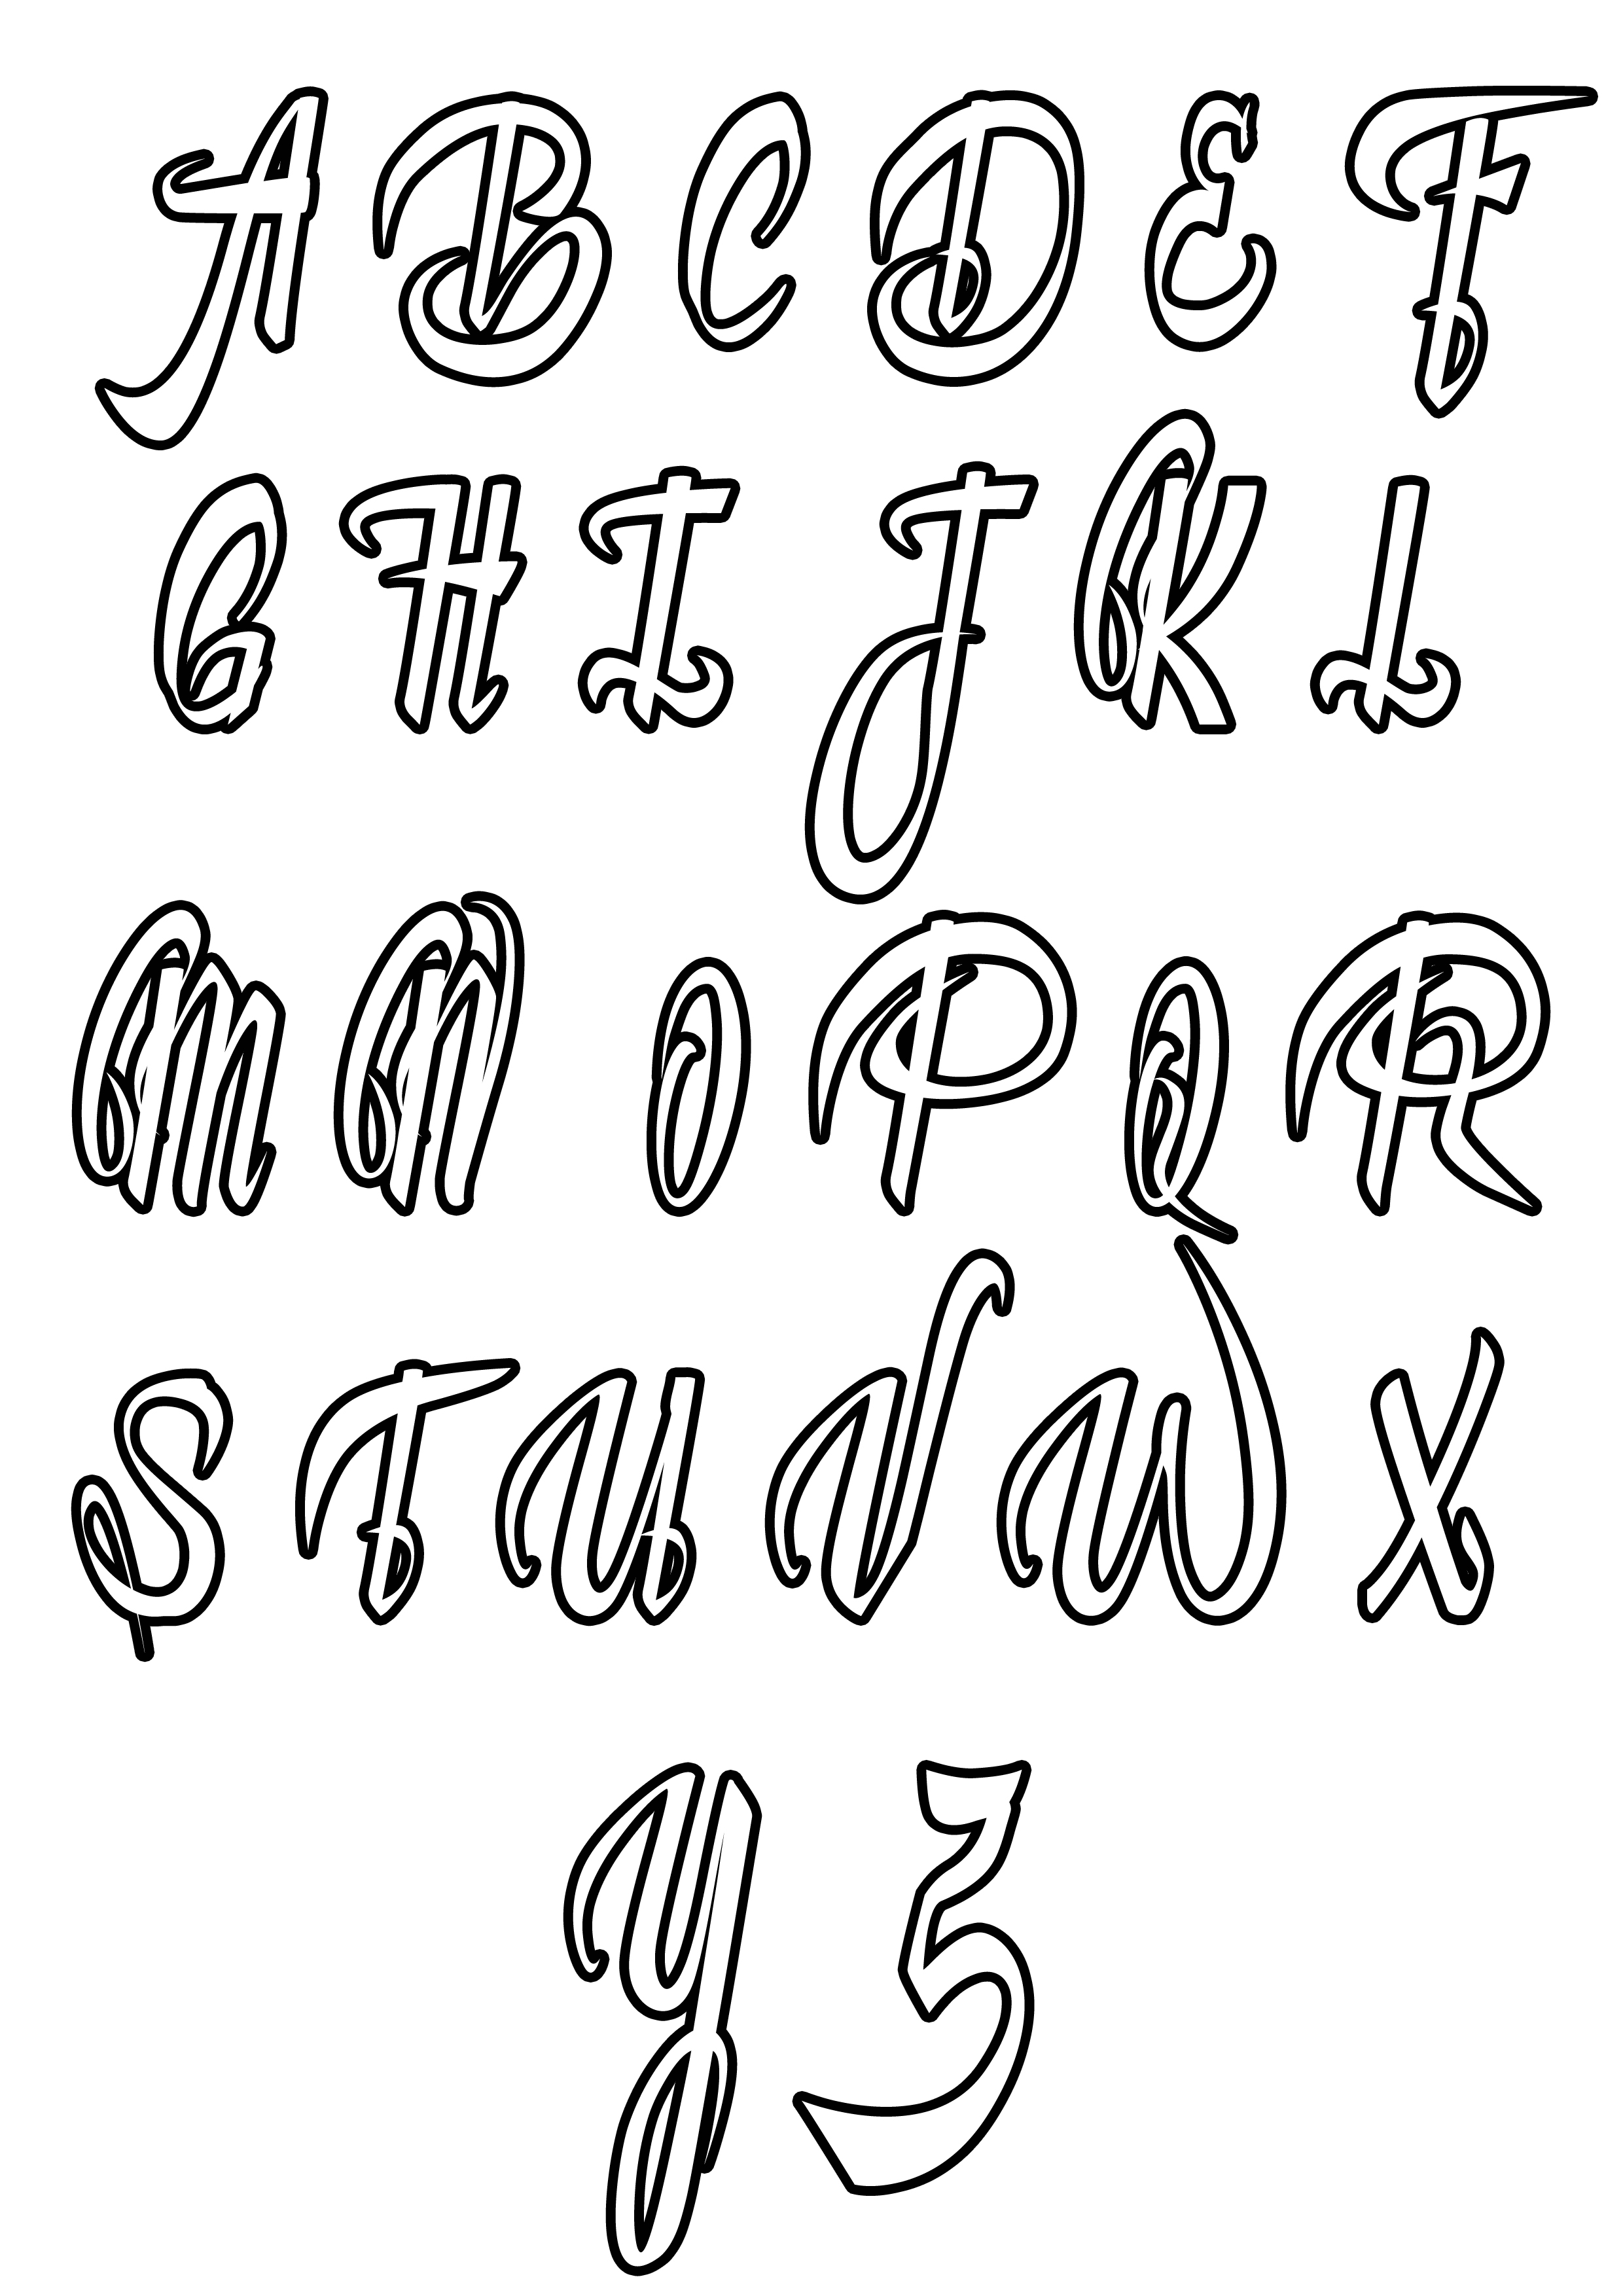 simple alphabet coloring pages | Alphabet Coloring pages for kids to print & color ...